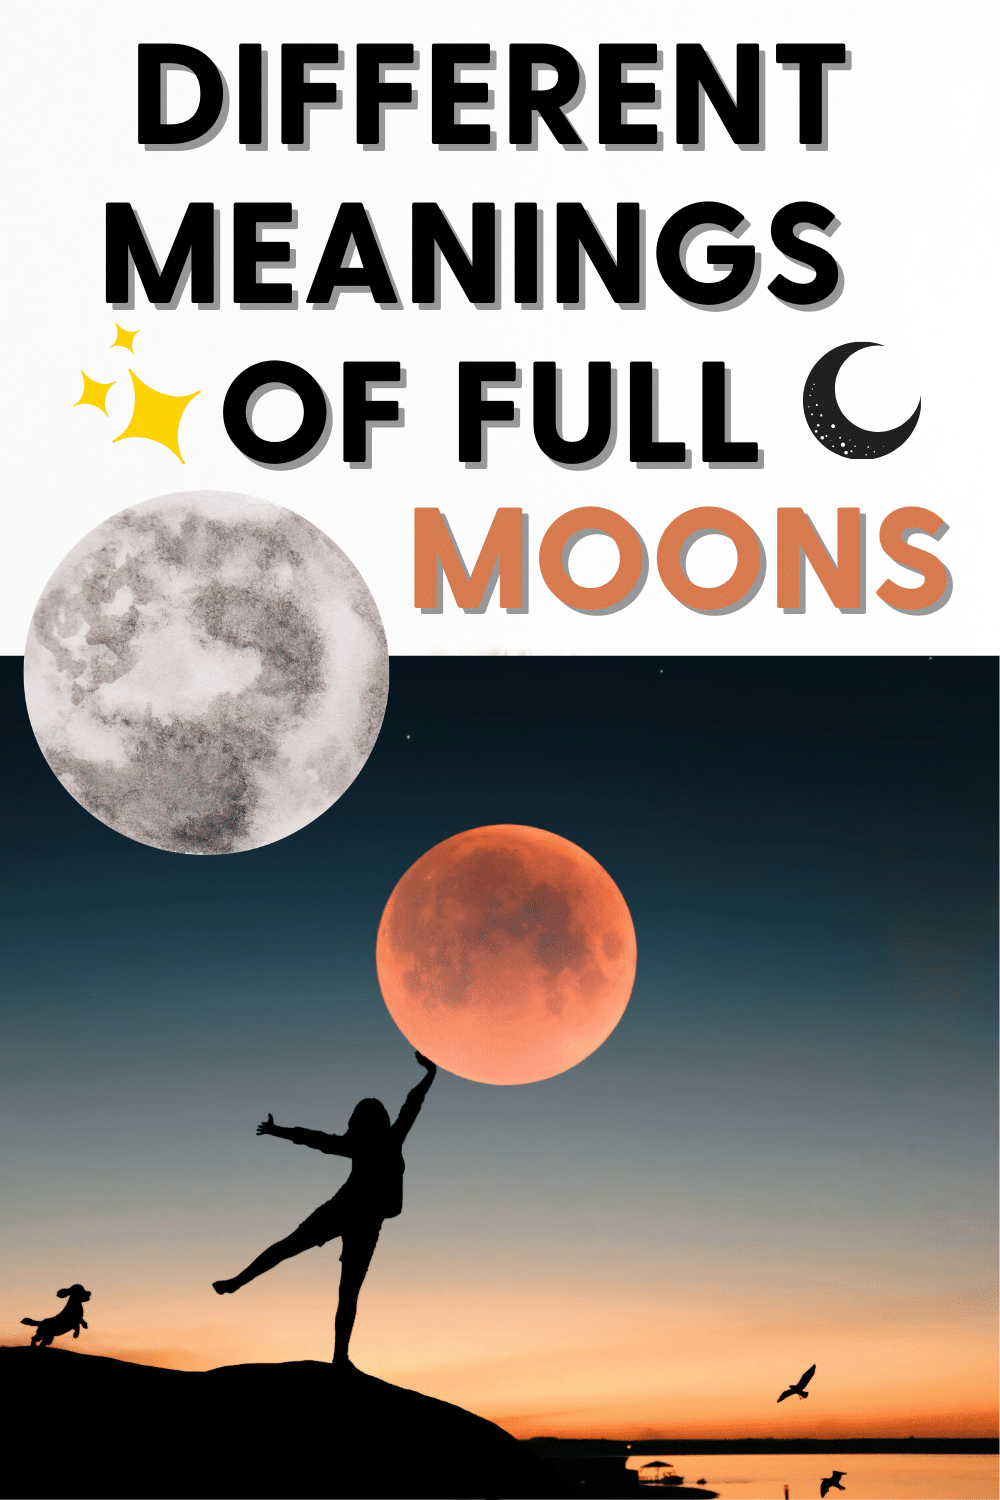 The Different Meanings of the Full Moons